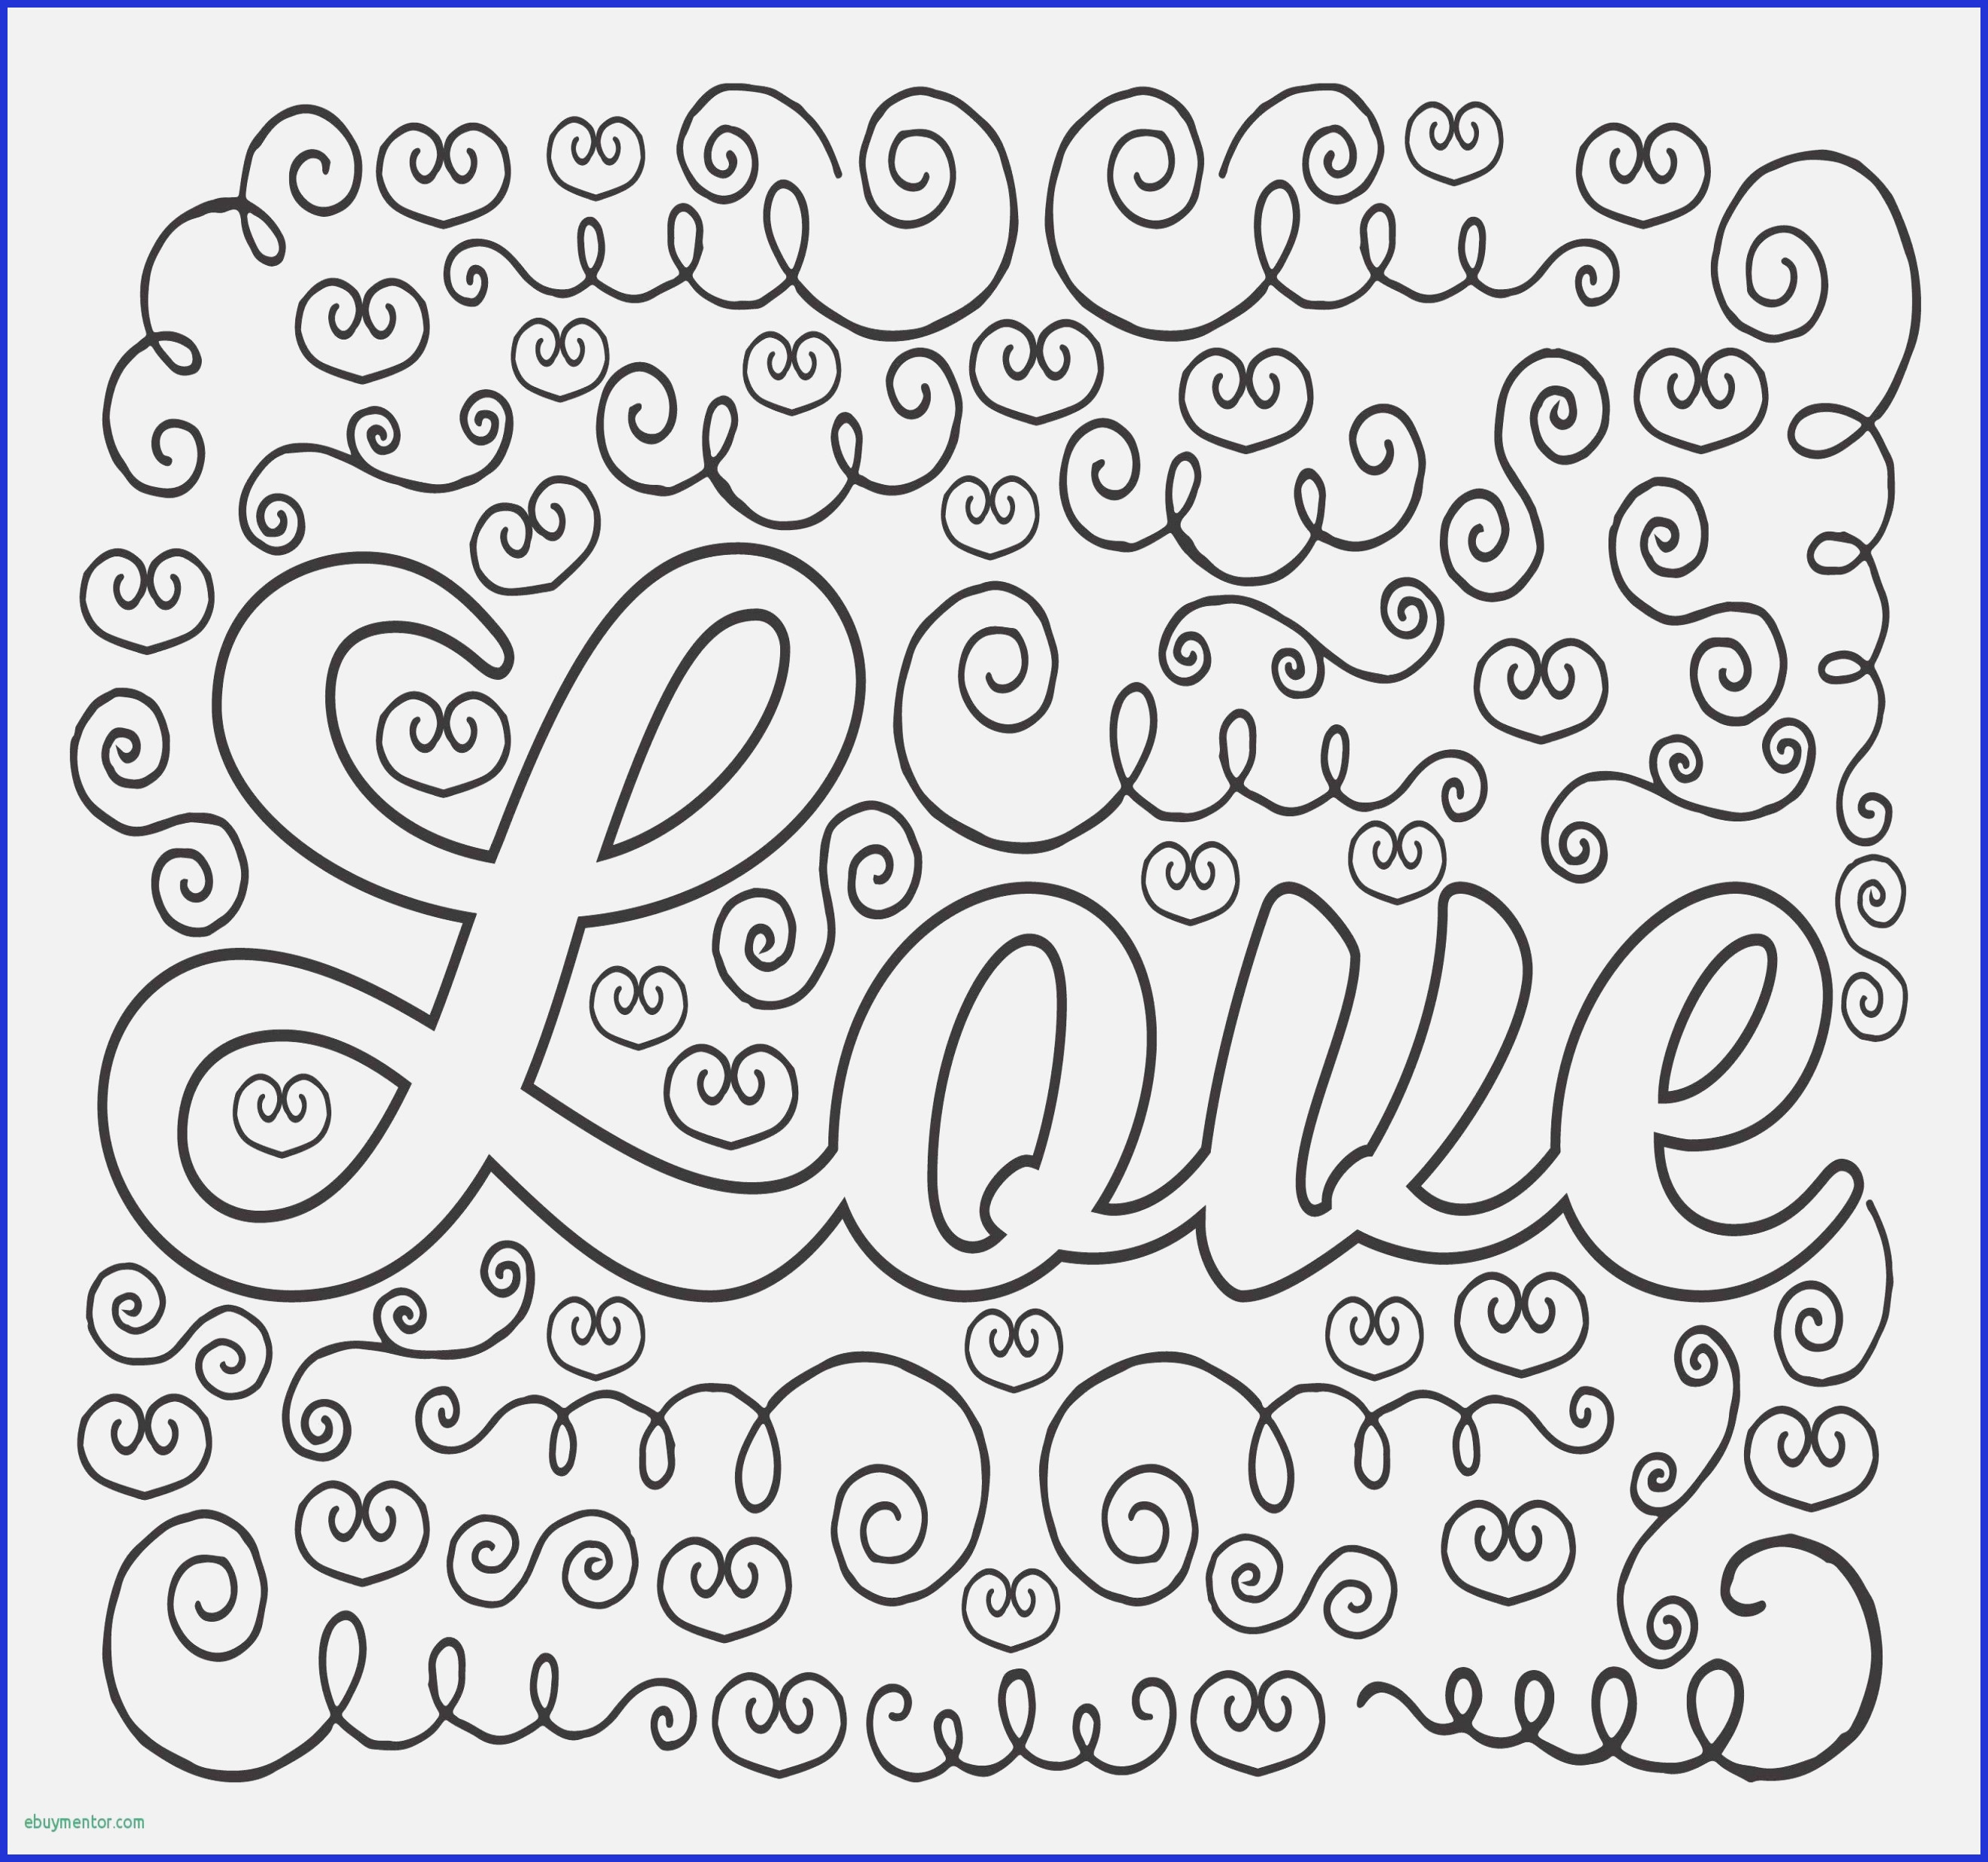 Coloring Ideas : Free Printable Christian Coloring Pages Beautiful - Free Printable Christian Coloring Pages